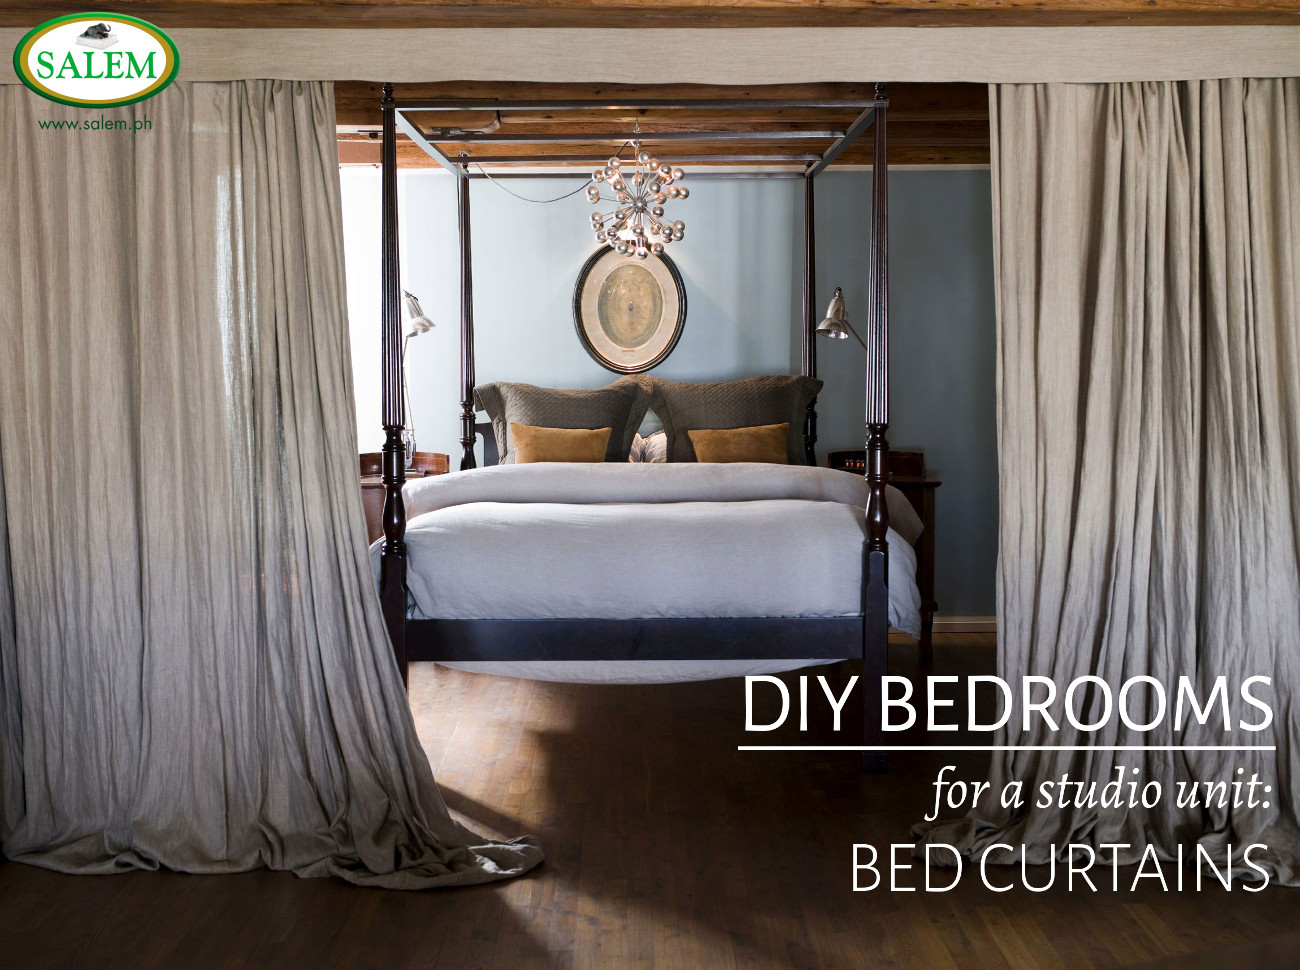 BED CURTAINS BANNER & studio apartments | the official blog